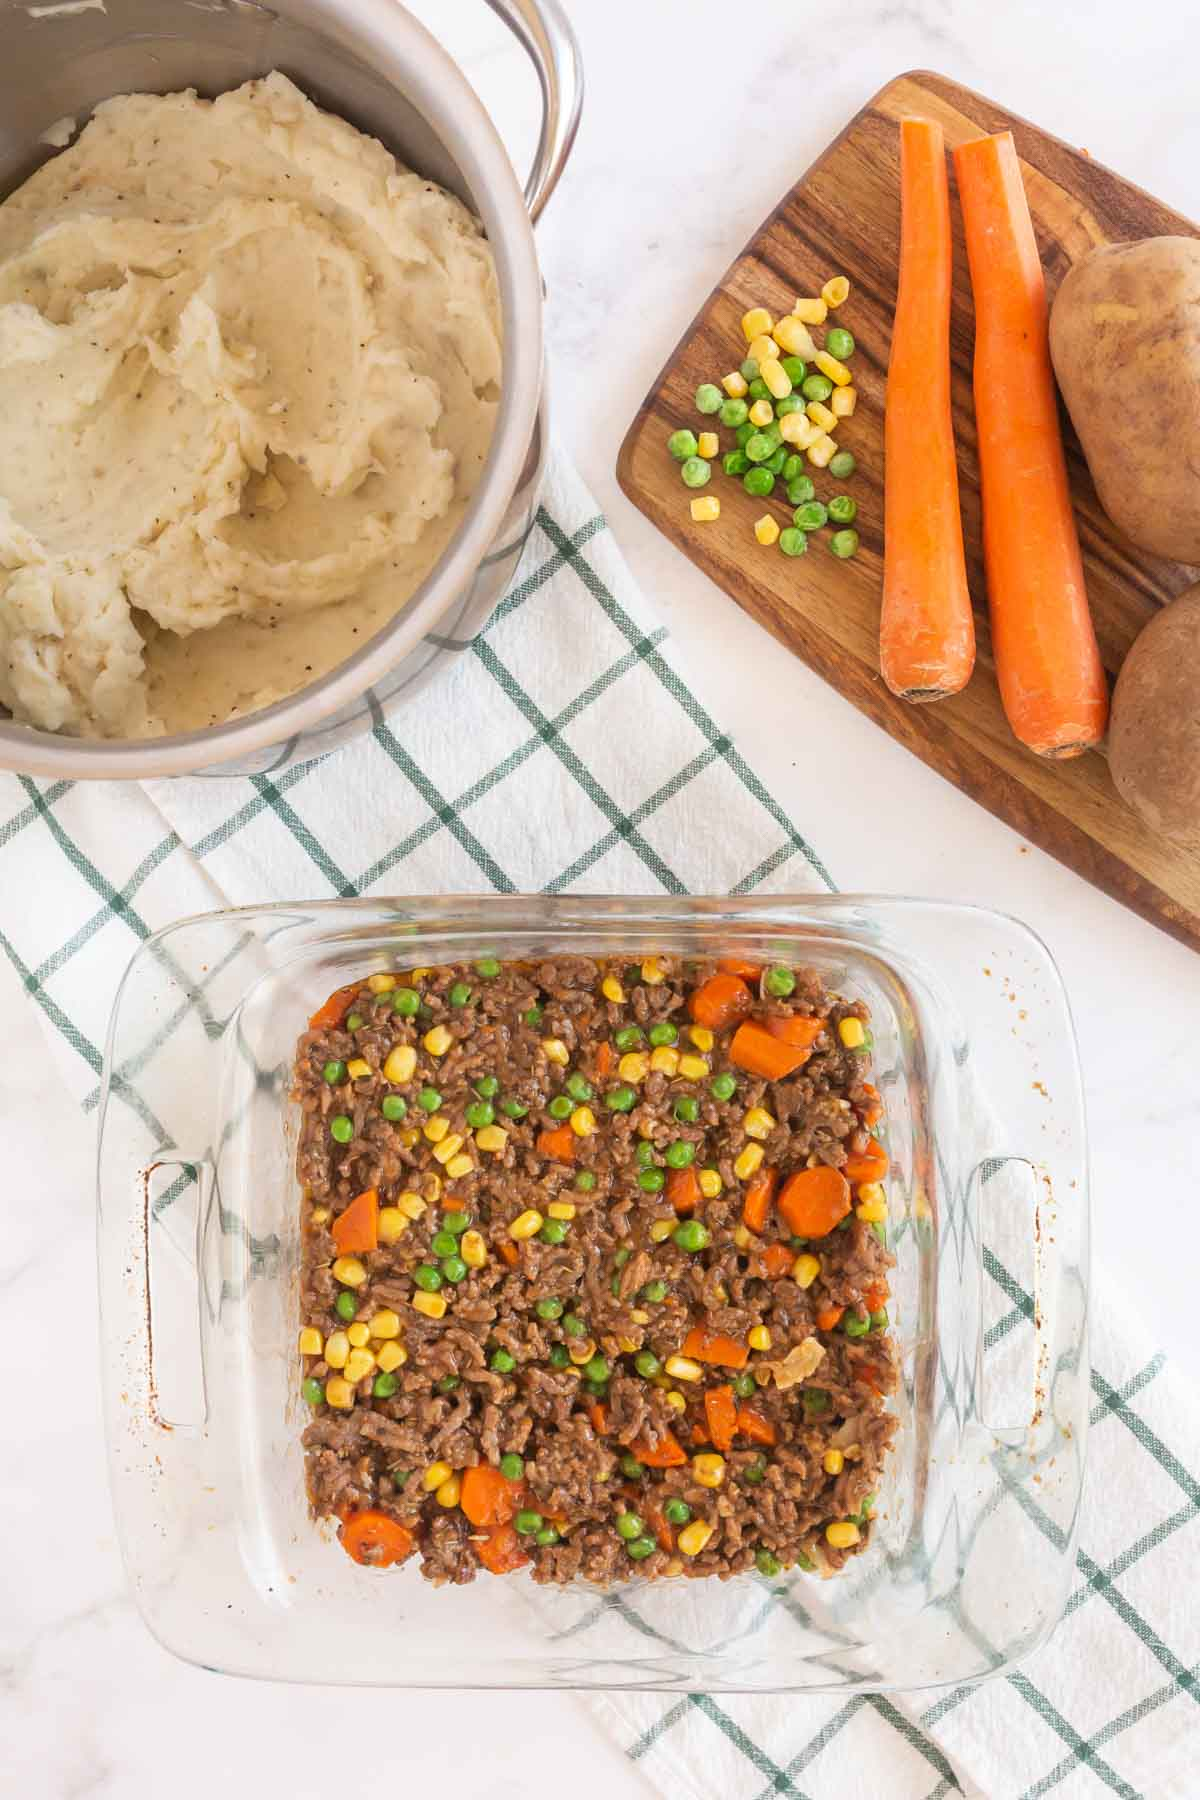 Sheperds pie filling in a square glass baking dish